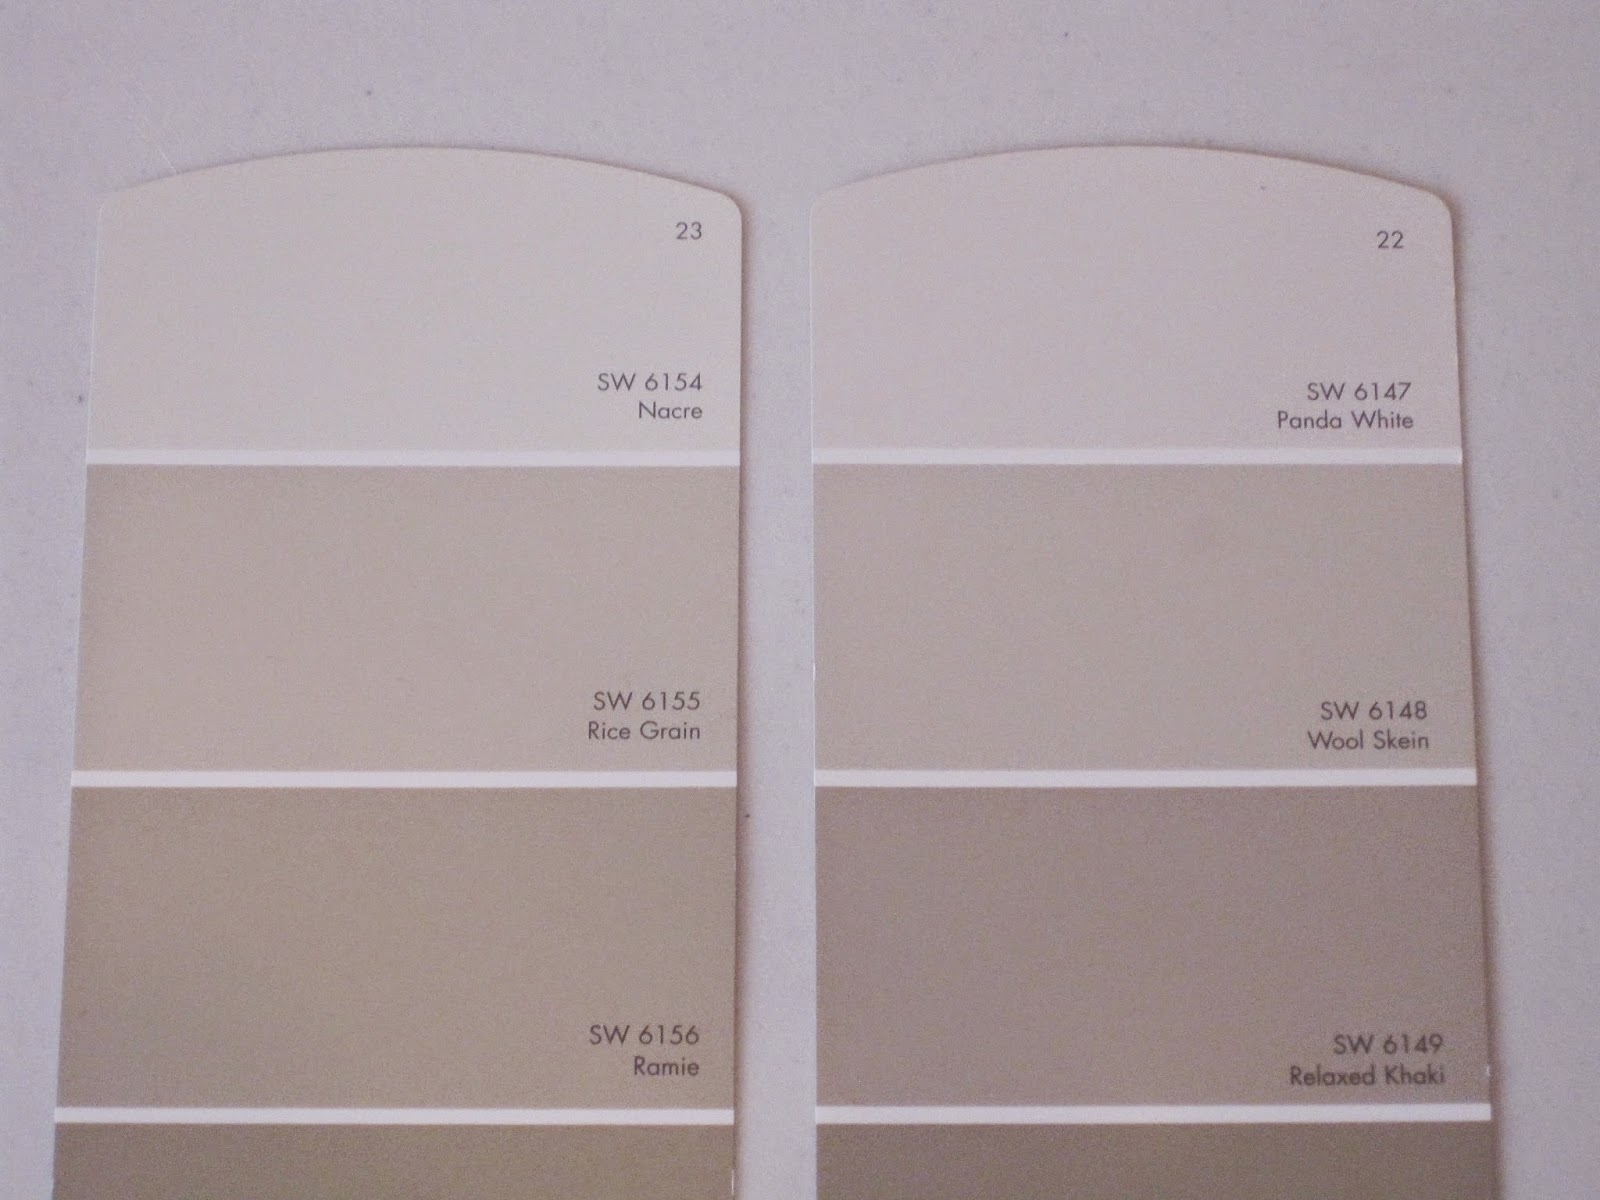 Neutral Ground Sherwin Williams Decorated Chaos A New Year And Exploring New Colors For